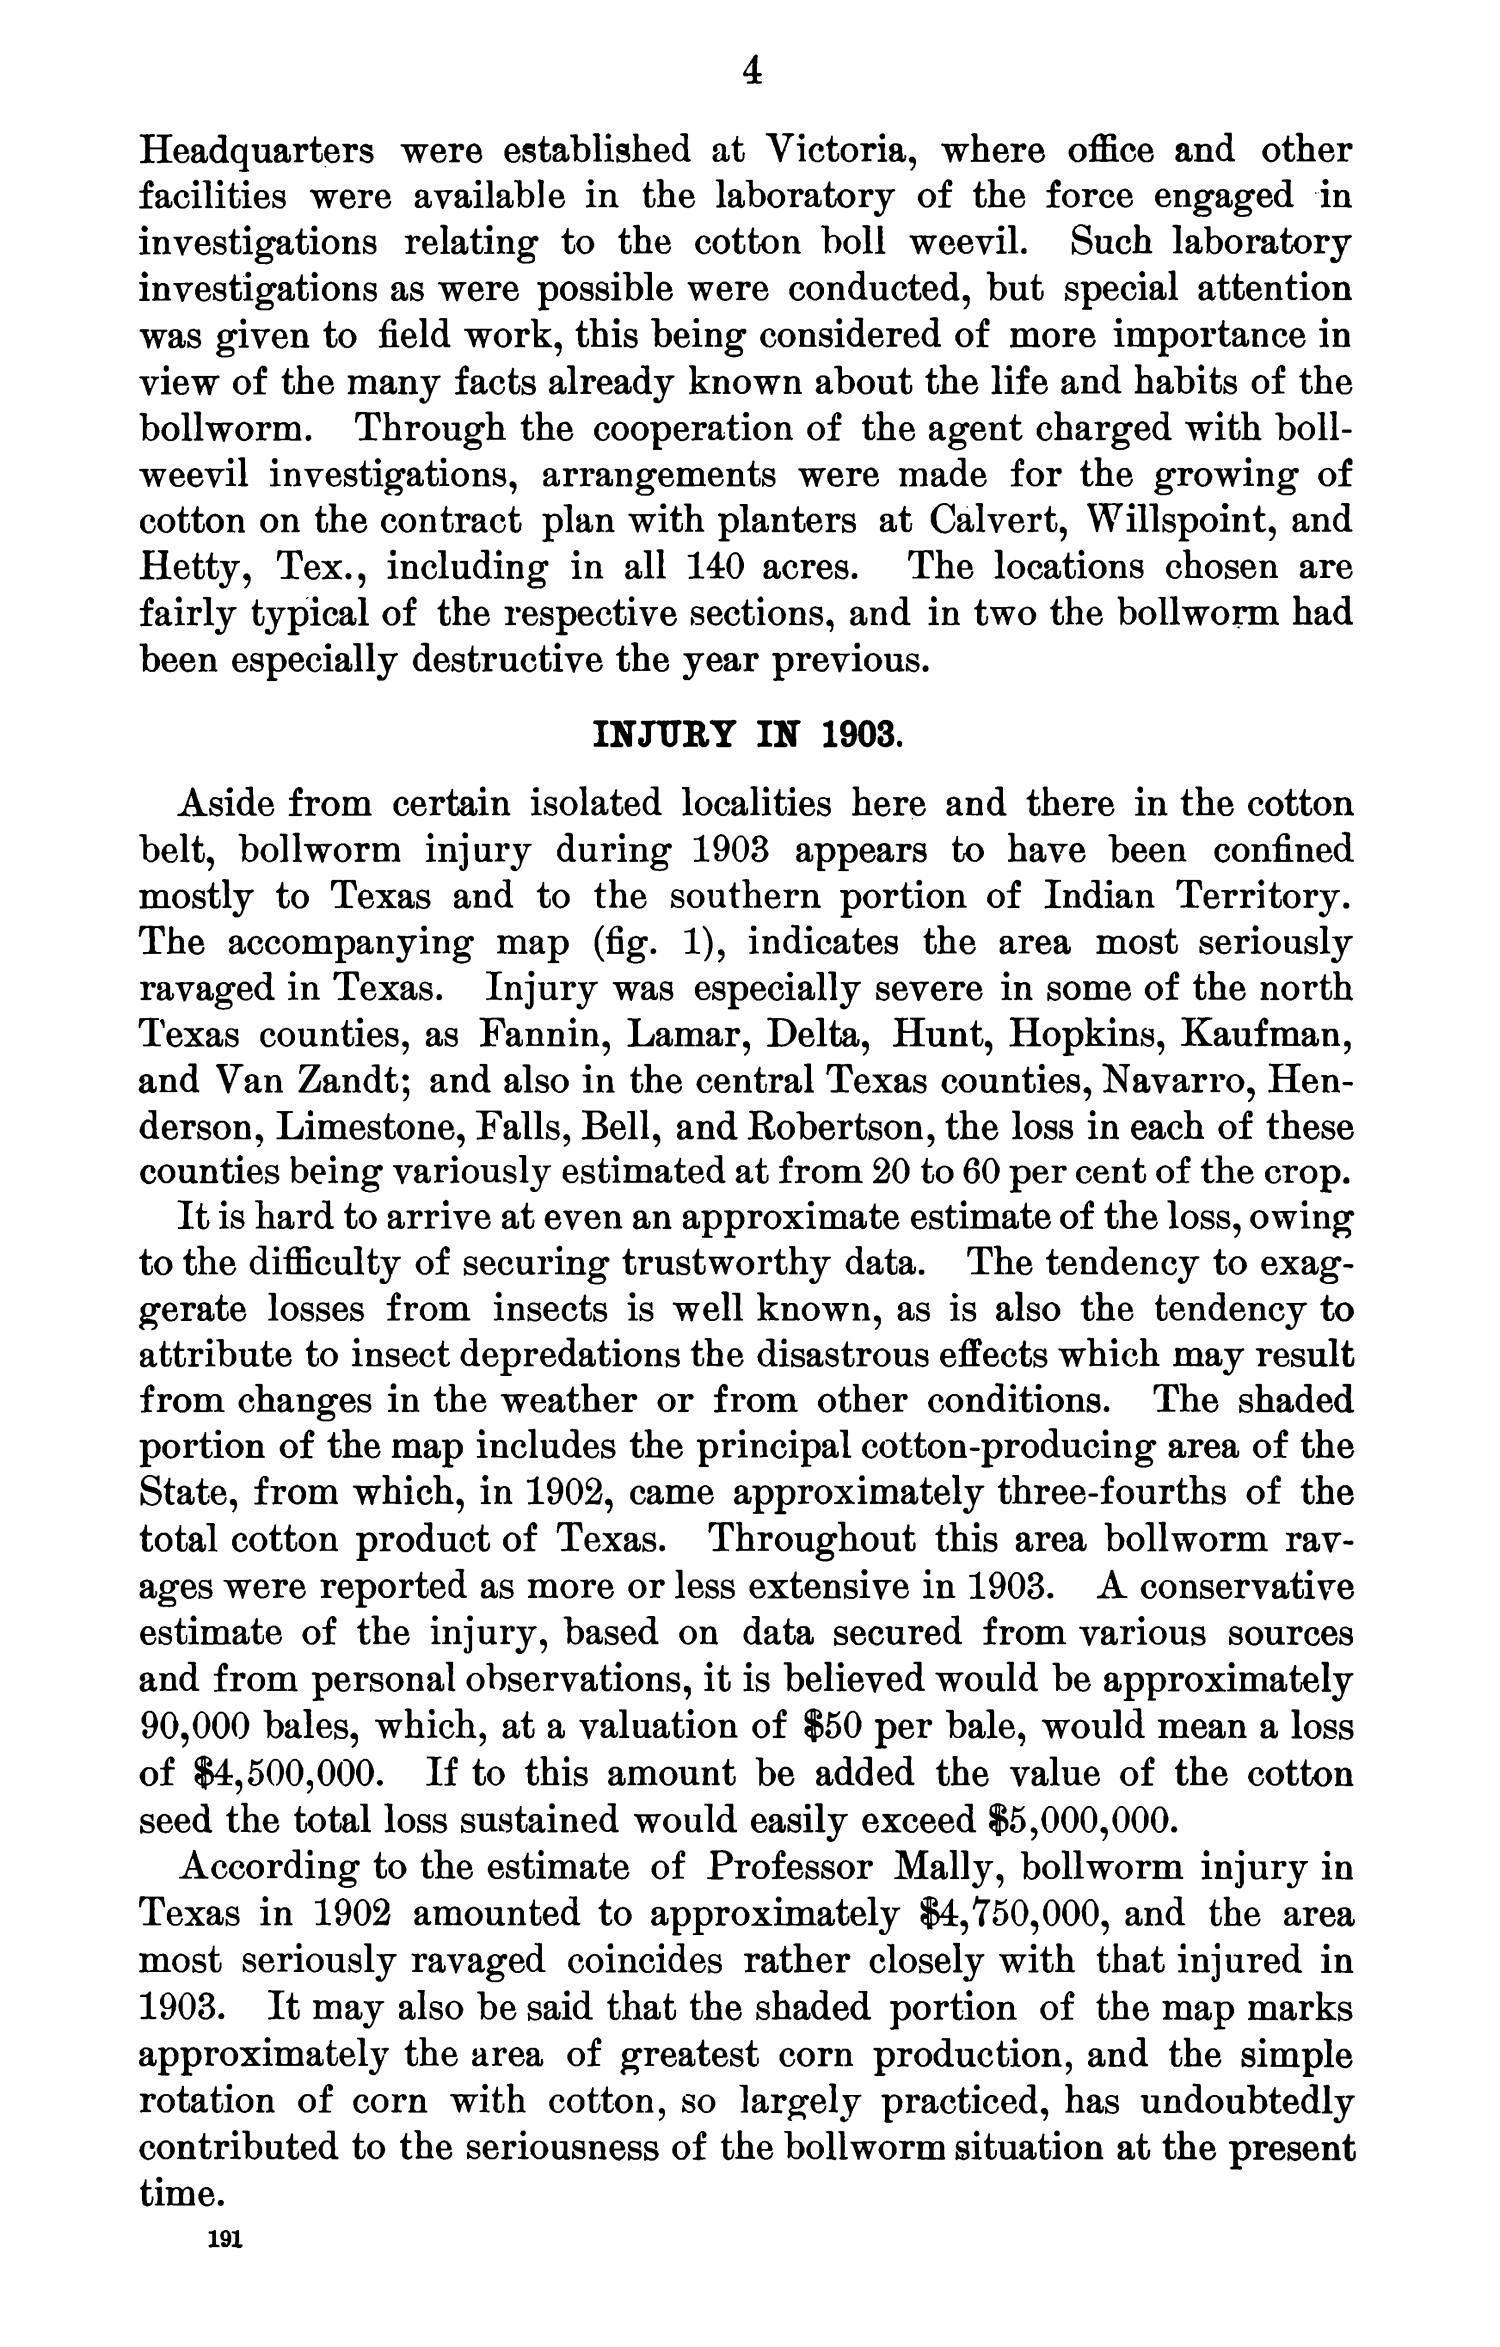 The Cotton Bollworm: An Account of the insect, With Results of Experiments in 1903                                                                                                      4